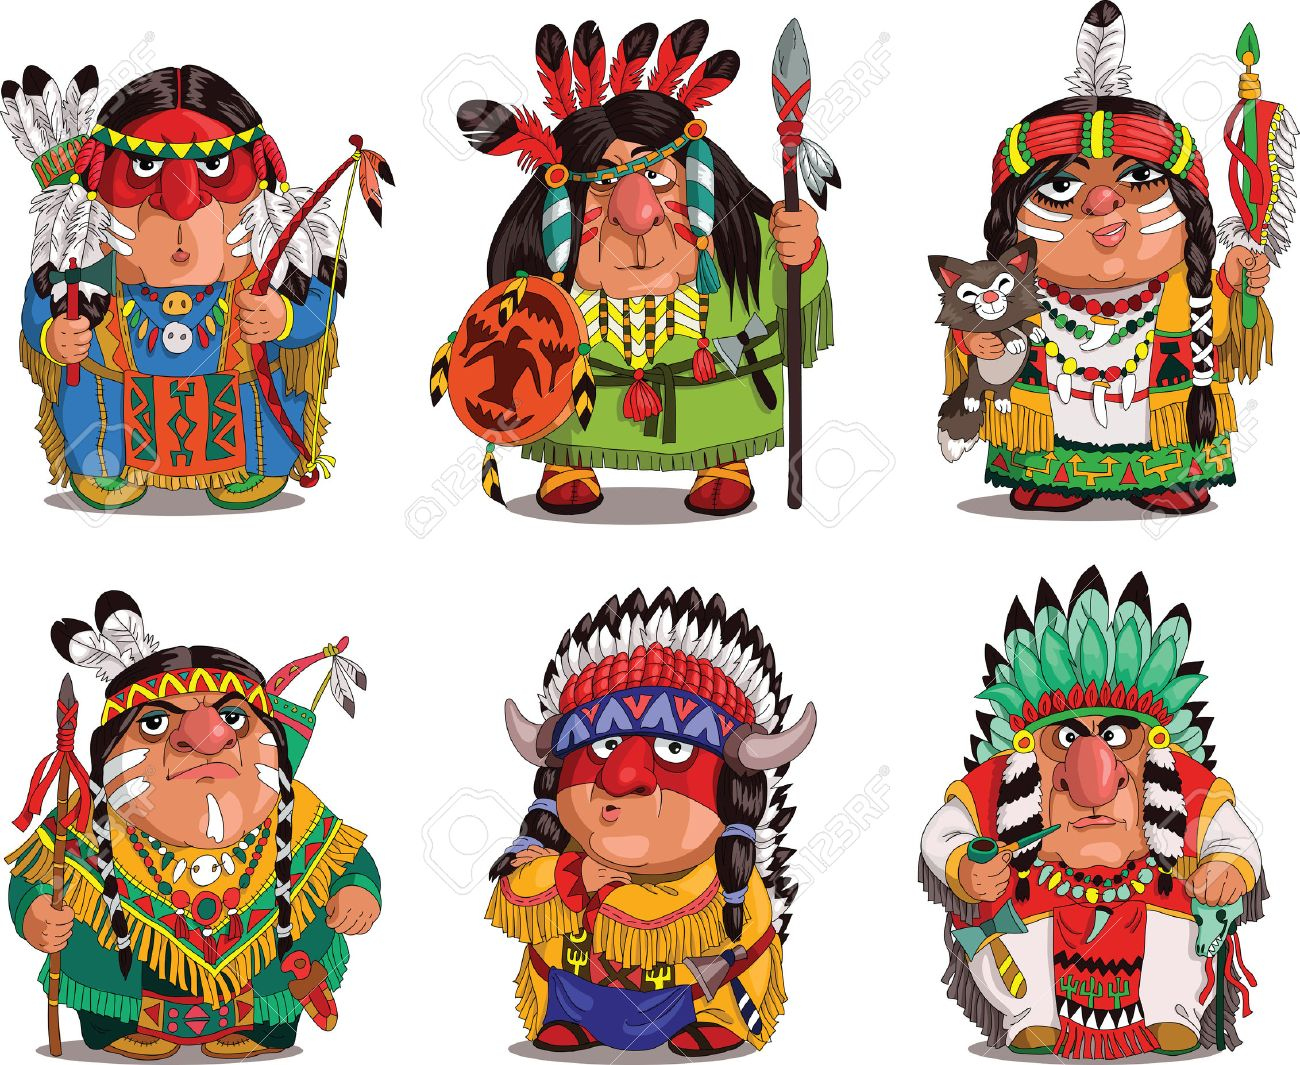 Cartoon Indians. Funny, travesty cartoon. Characters. Indians set. Isolated objects. Standard-Bild - 48770625